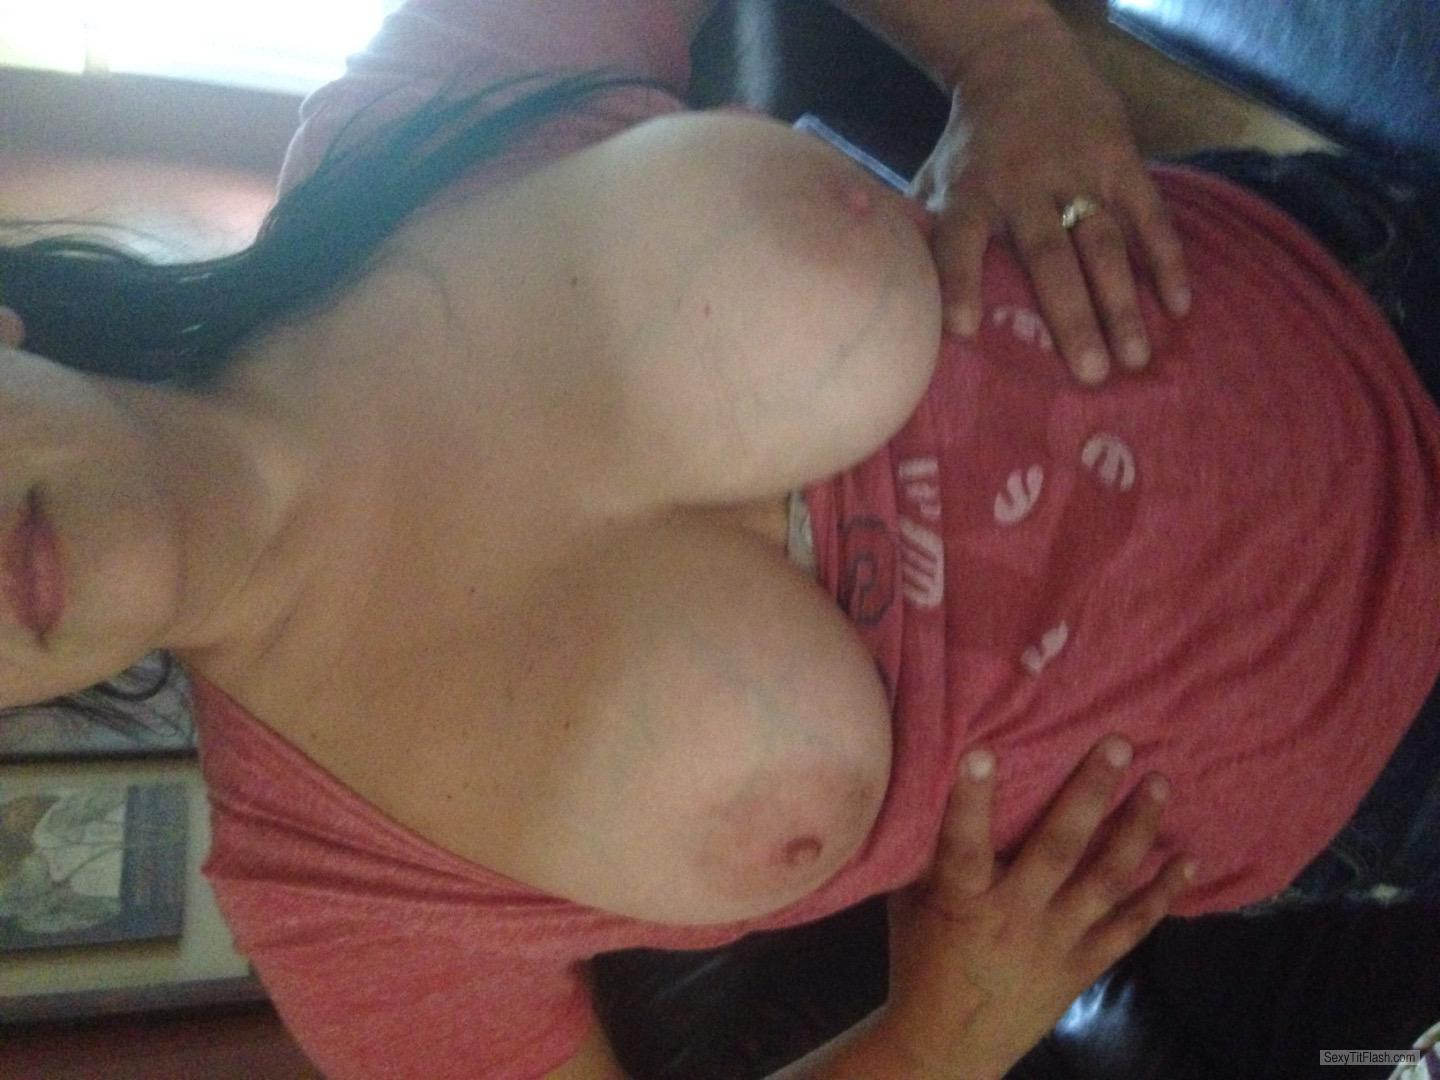 Tit Flash: Wife's Tanlined Medium Tits - Sharon from United States